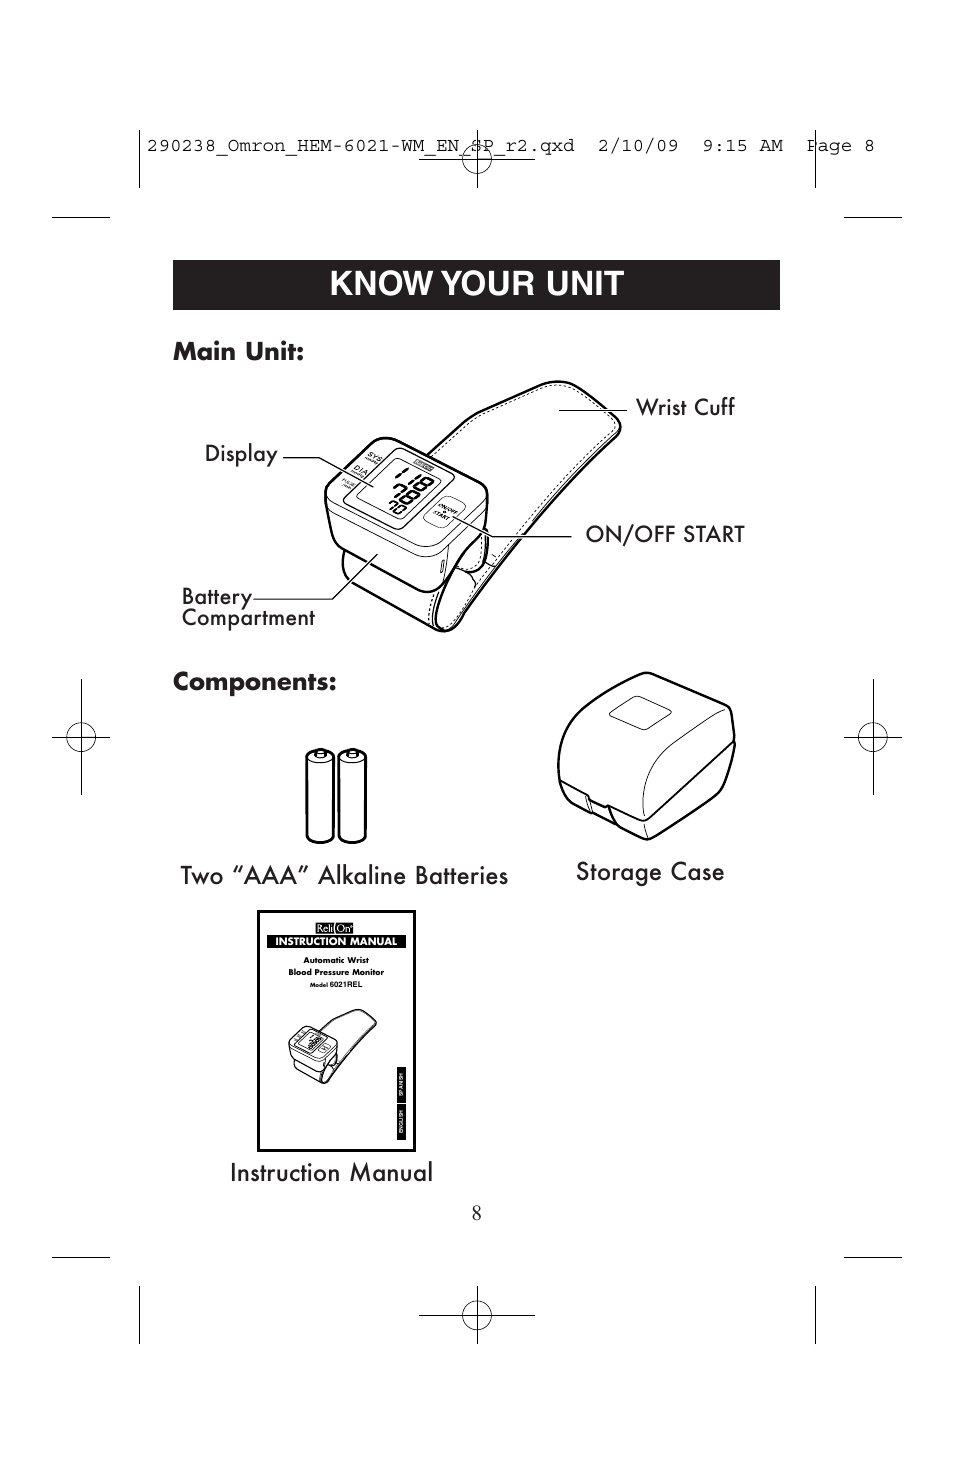 Know your unit, Operating instructions instruction manual